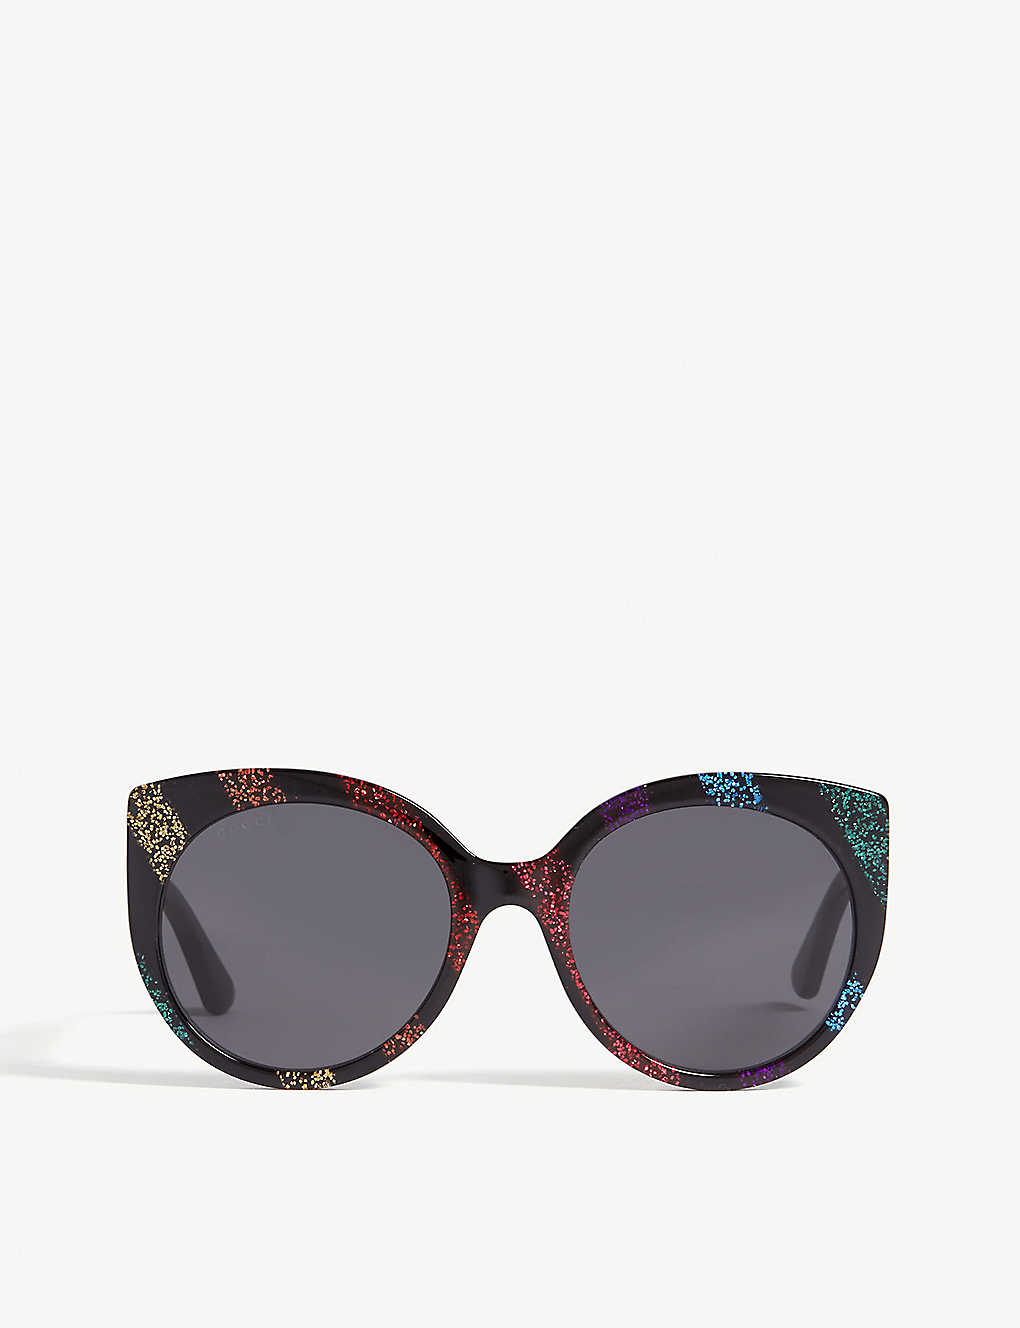 94e7c03f94c11 GUCCI - Gg0325s glitter cat-eye frame sunglasses